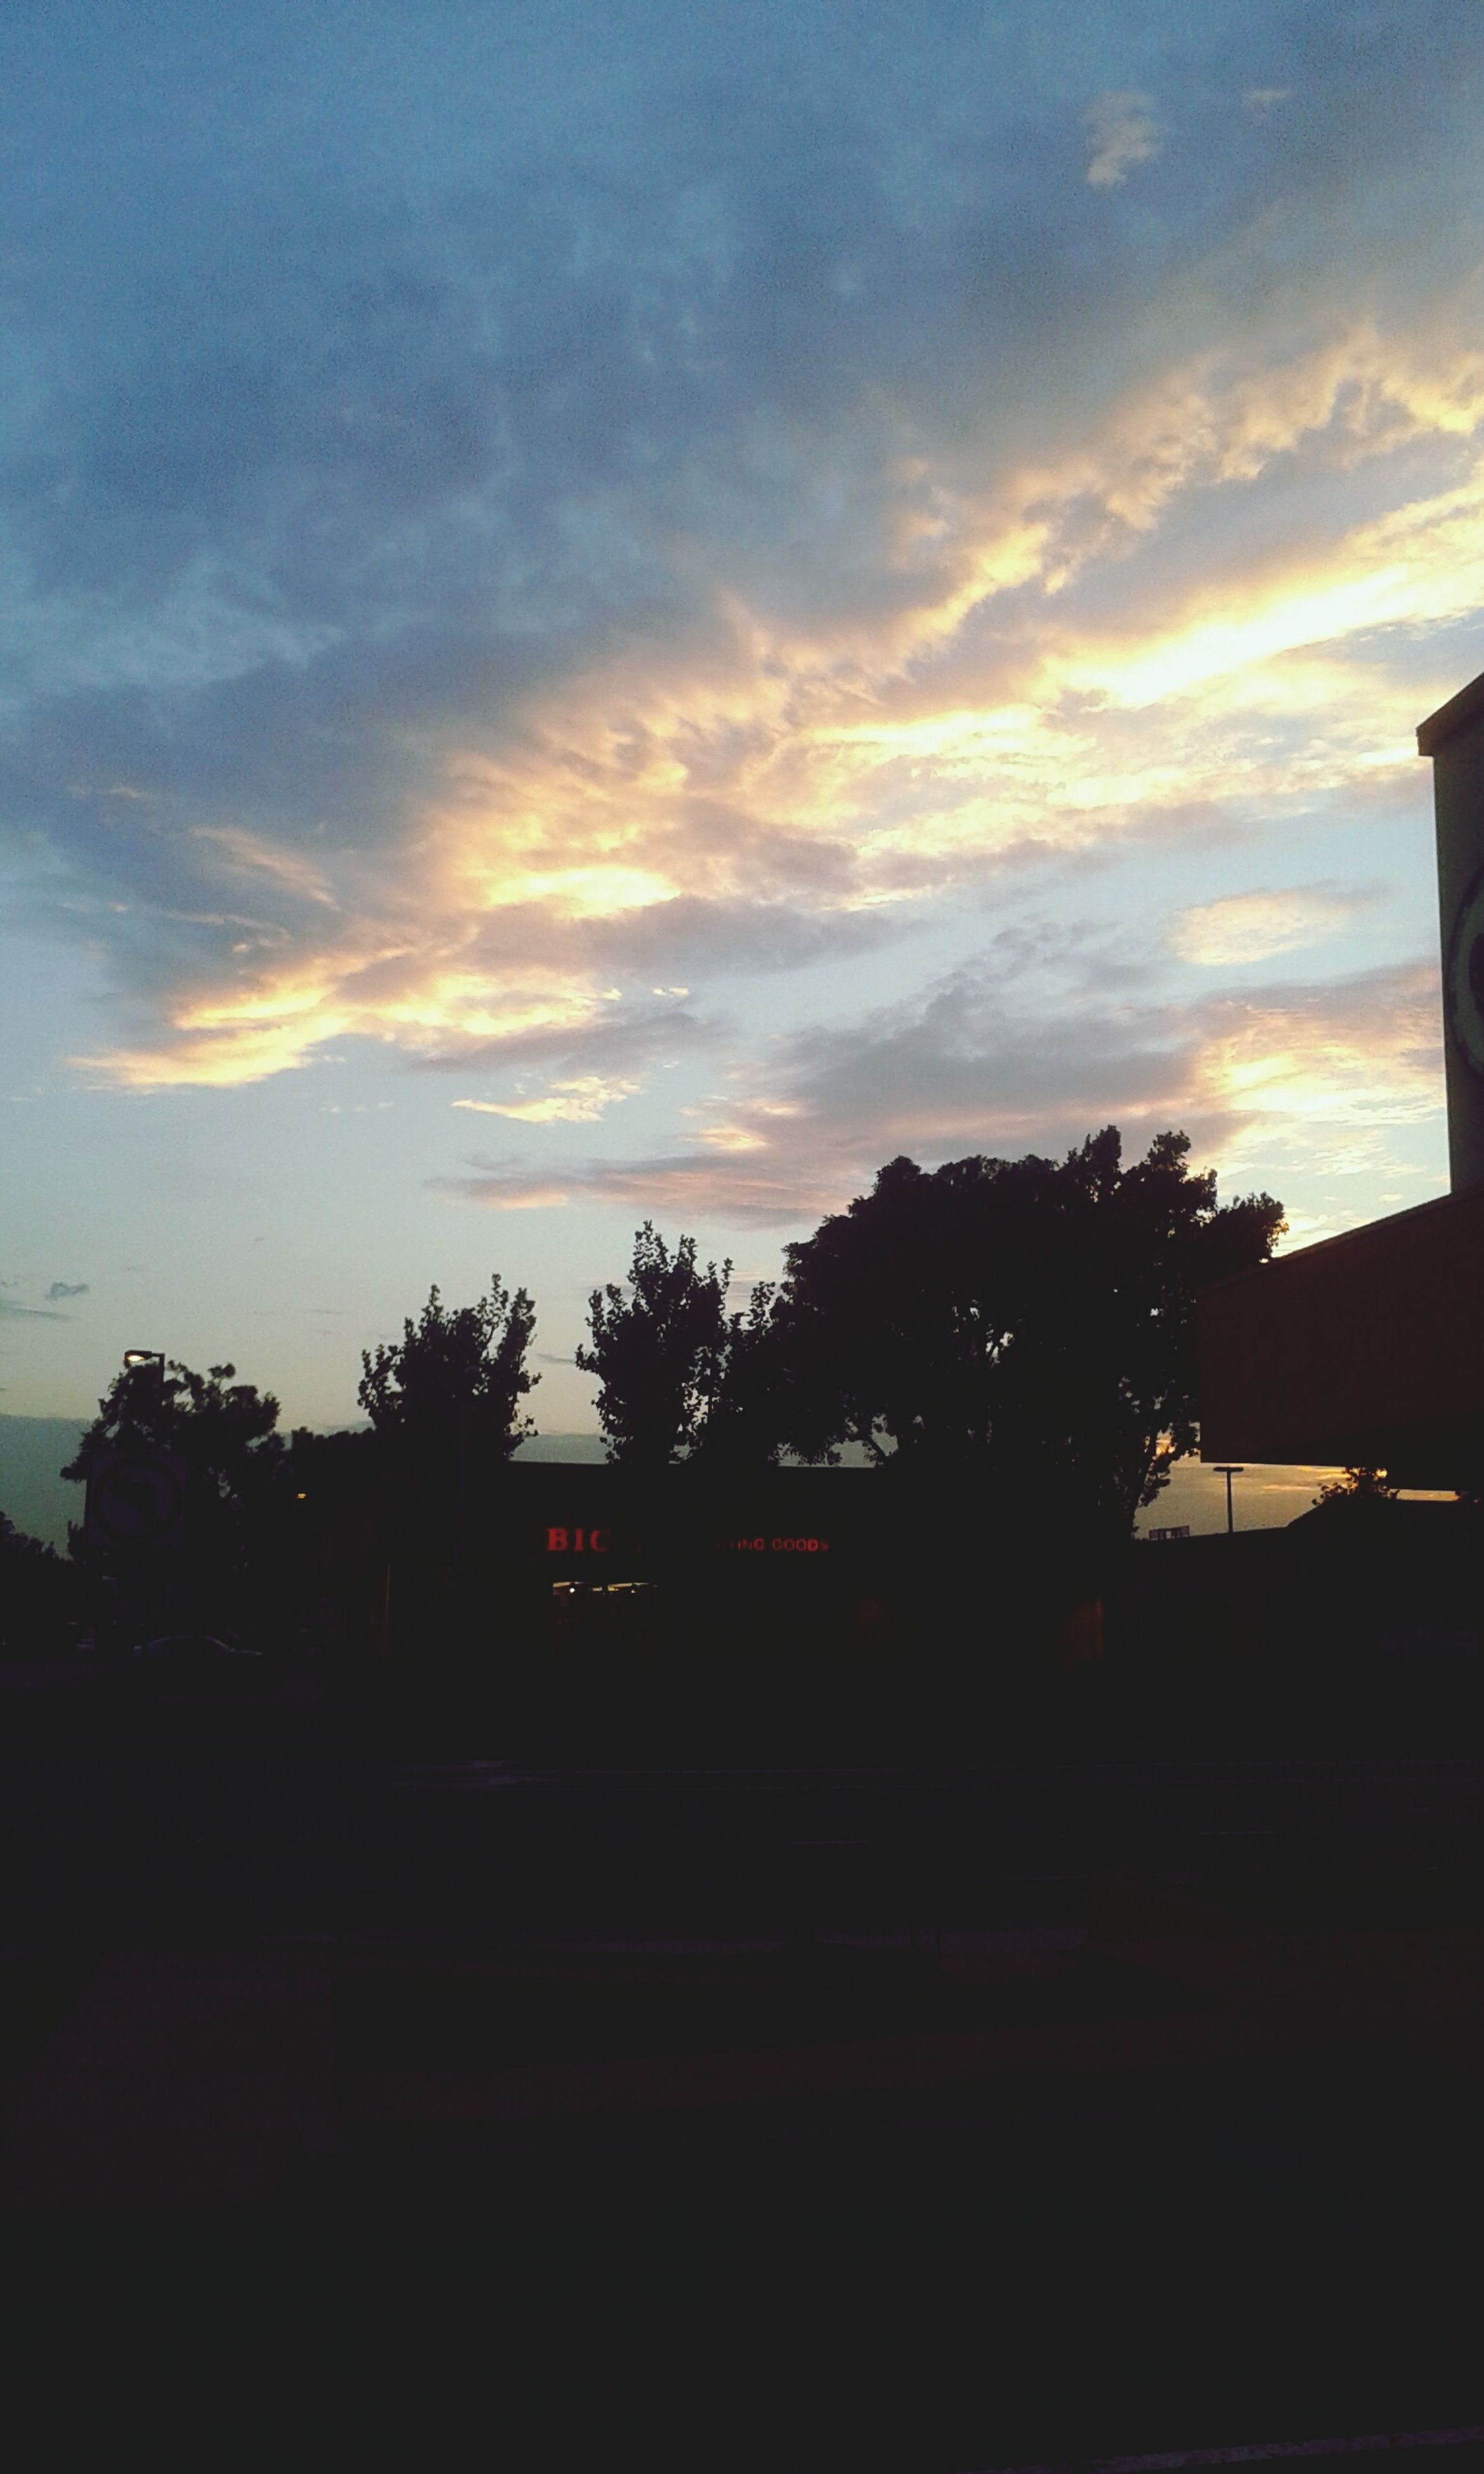 silhouette, sunset, sky, tree, cloud - sky, built structure, cloud, architecture, dusk, building exterior, cloudy, beauty in nature, nature, tranquility, scenics, tranquil scene, dark, orange color, outdoors, no people